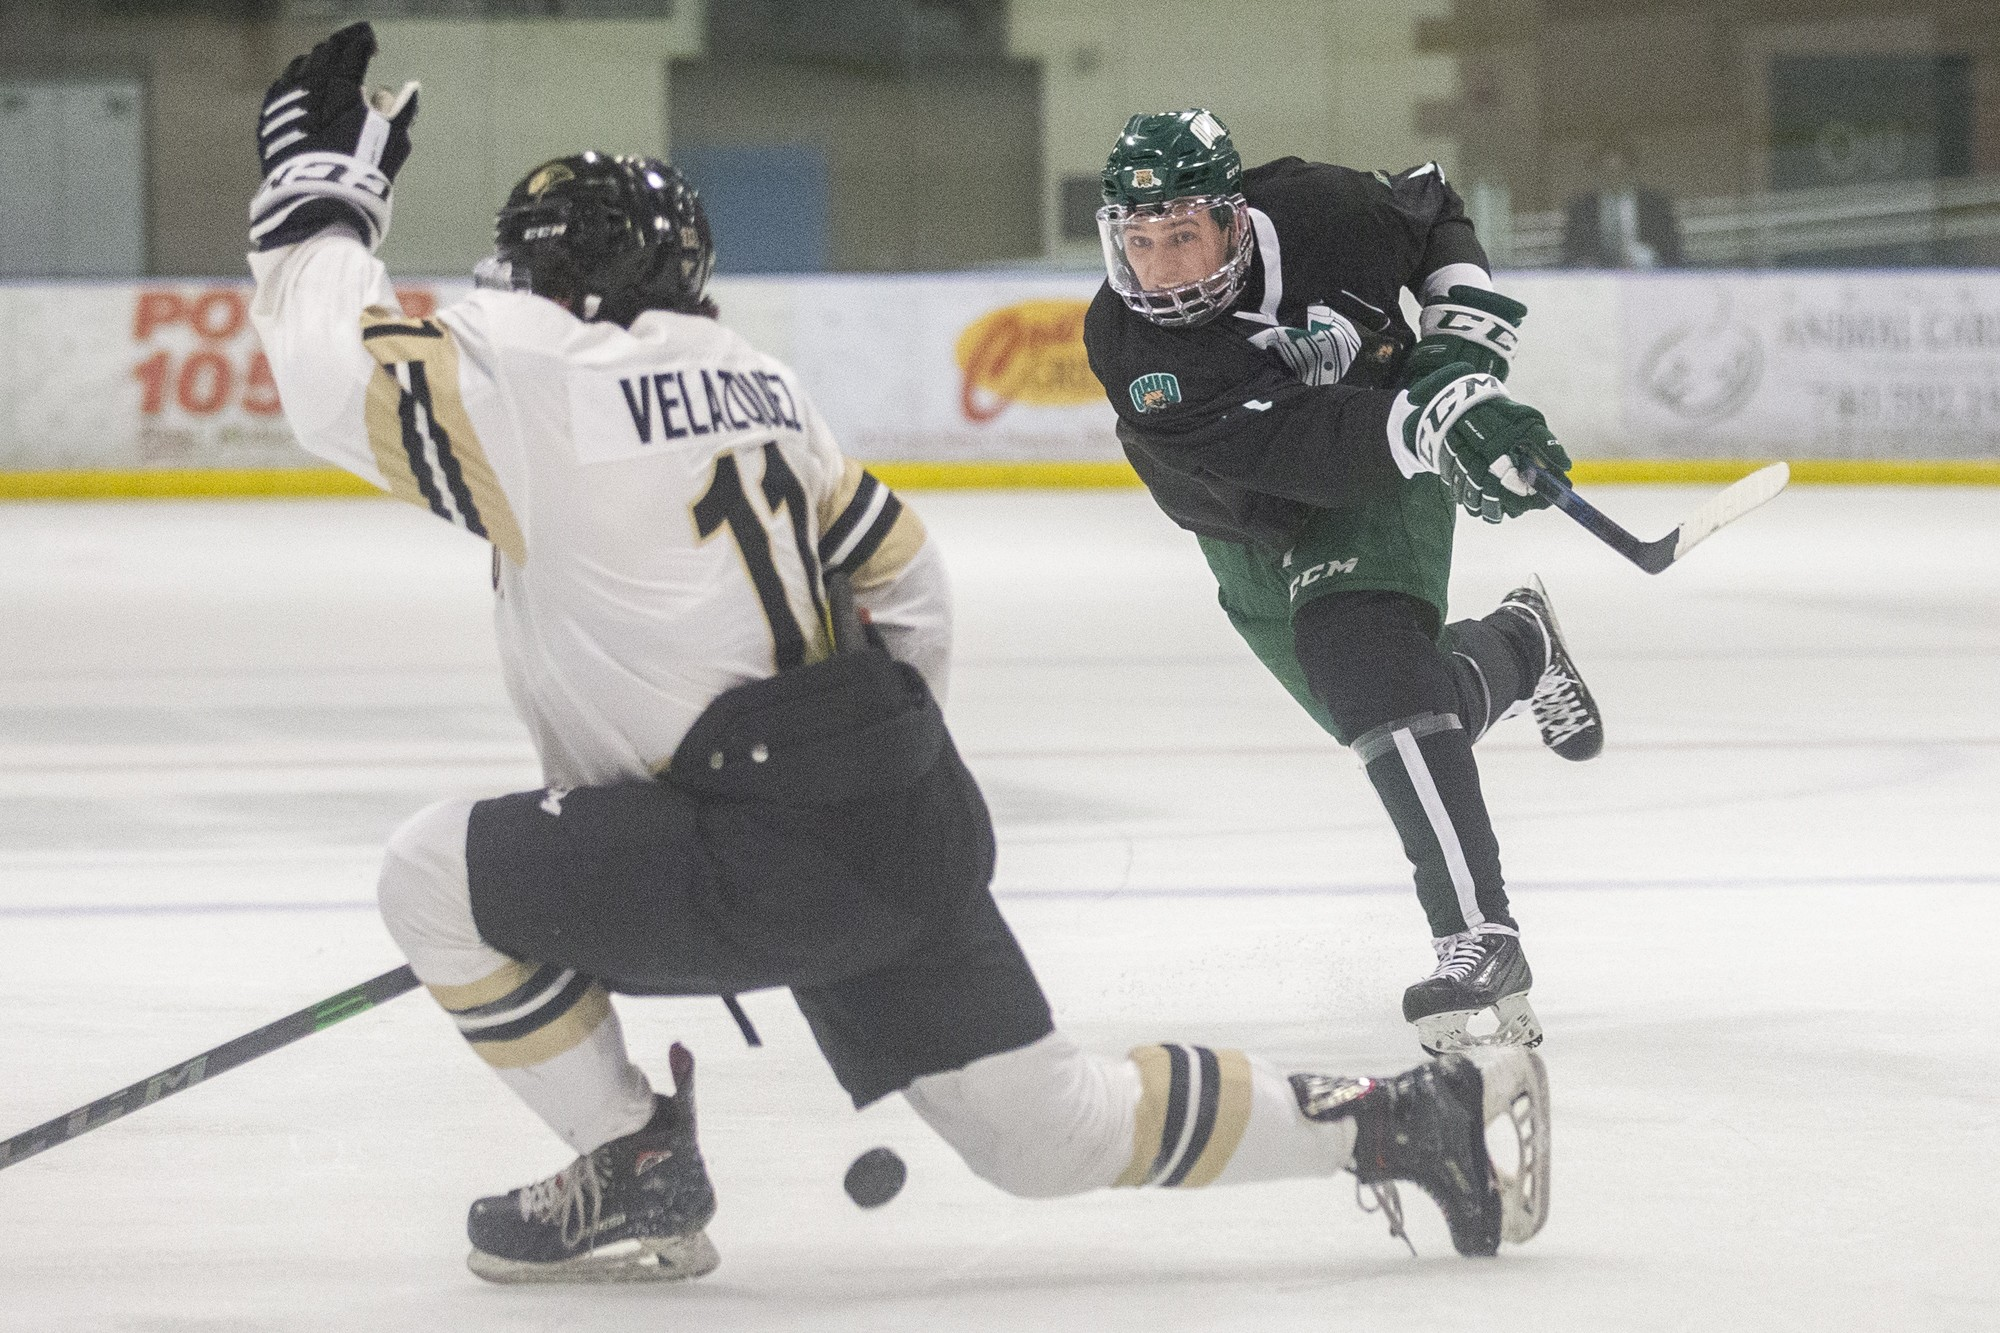 Ohio defenseman Blake Rossi (#7) fires a shot on net during the Ohio hockey game against Lindenwood on Friday, March 12, 2021, at the Bird Arena in Athens, Ohio. The Bobcats beat the Lions 3-0.